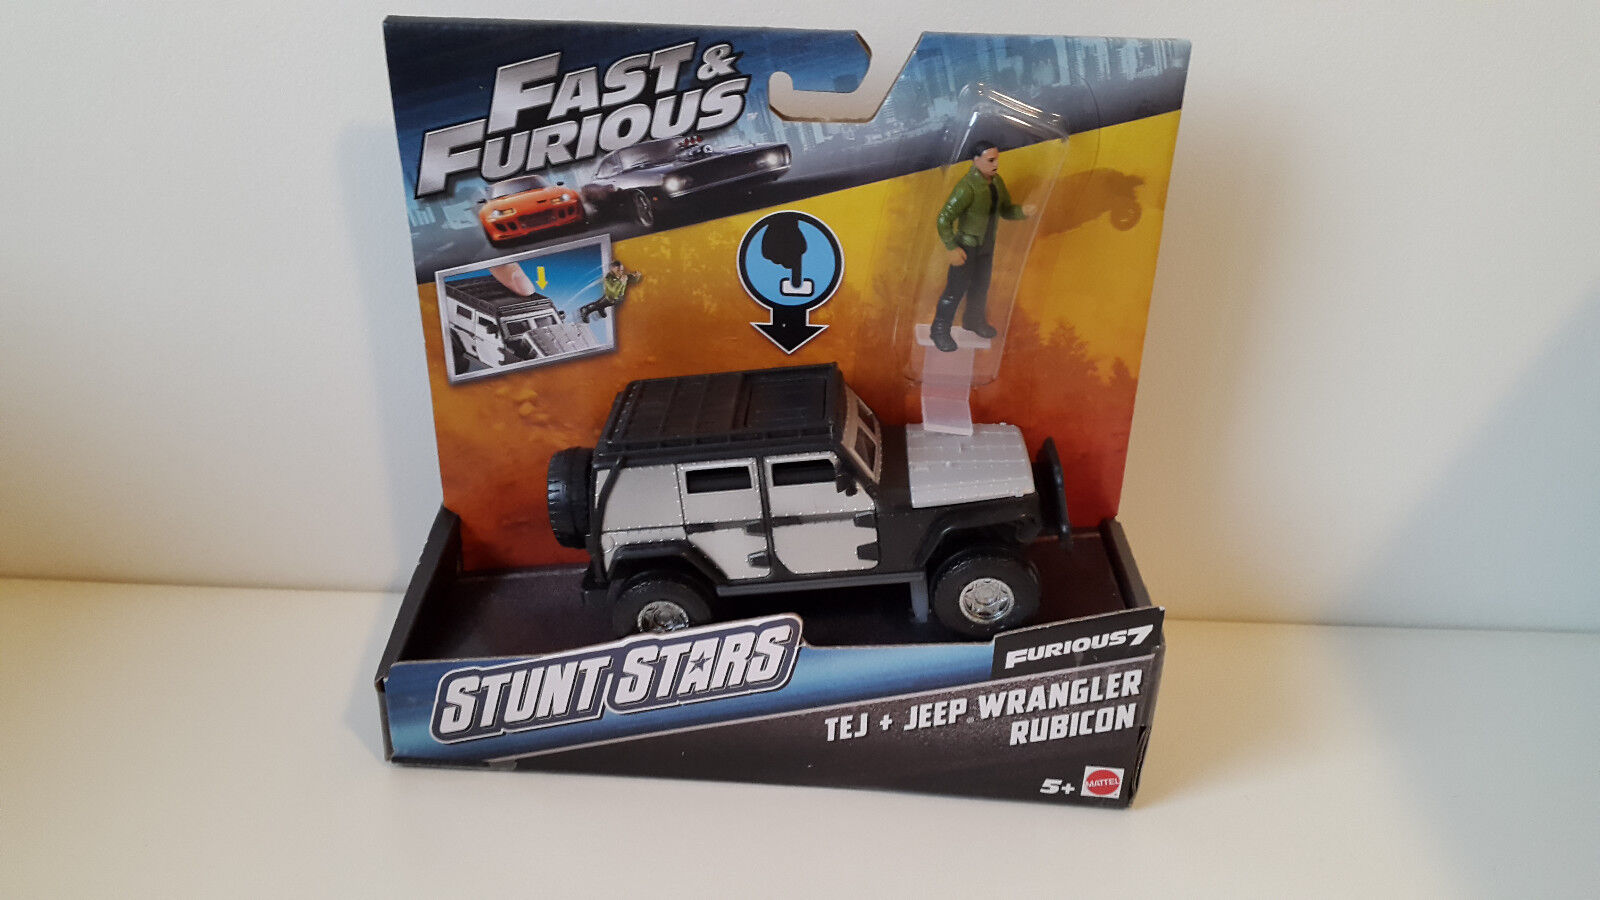 Fast & Furoius 7 Stunt Stars TEJ Jeep Wrangler Modellauto Mattel model car NEU  | Up-to-date Styling